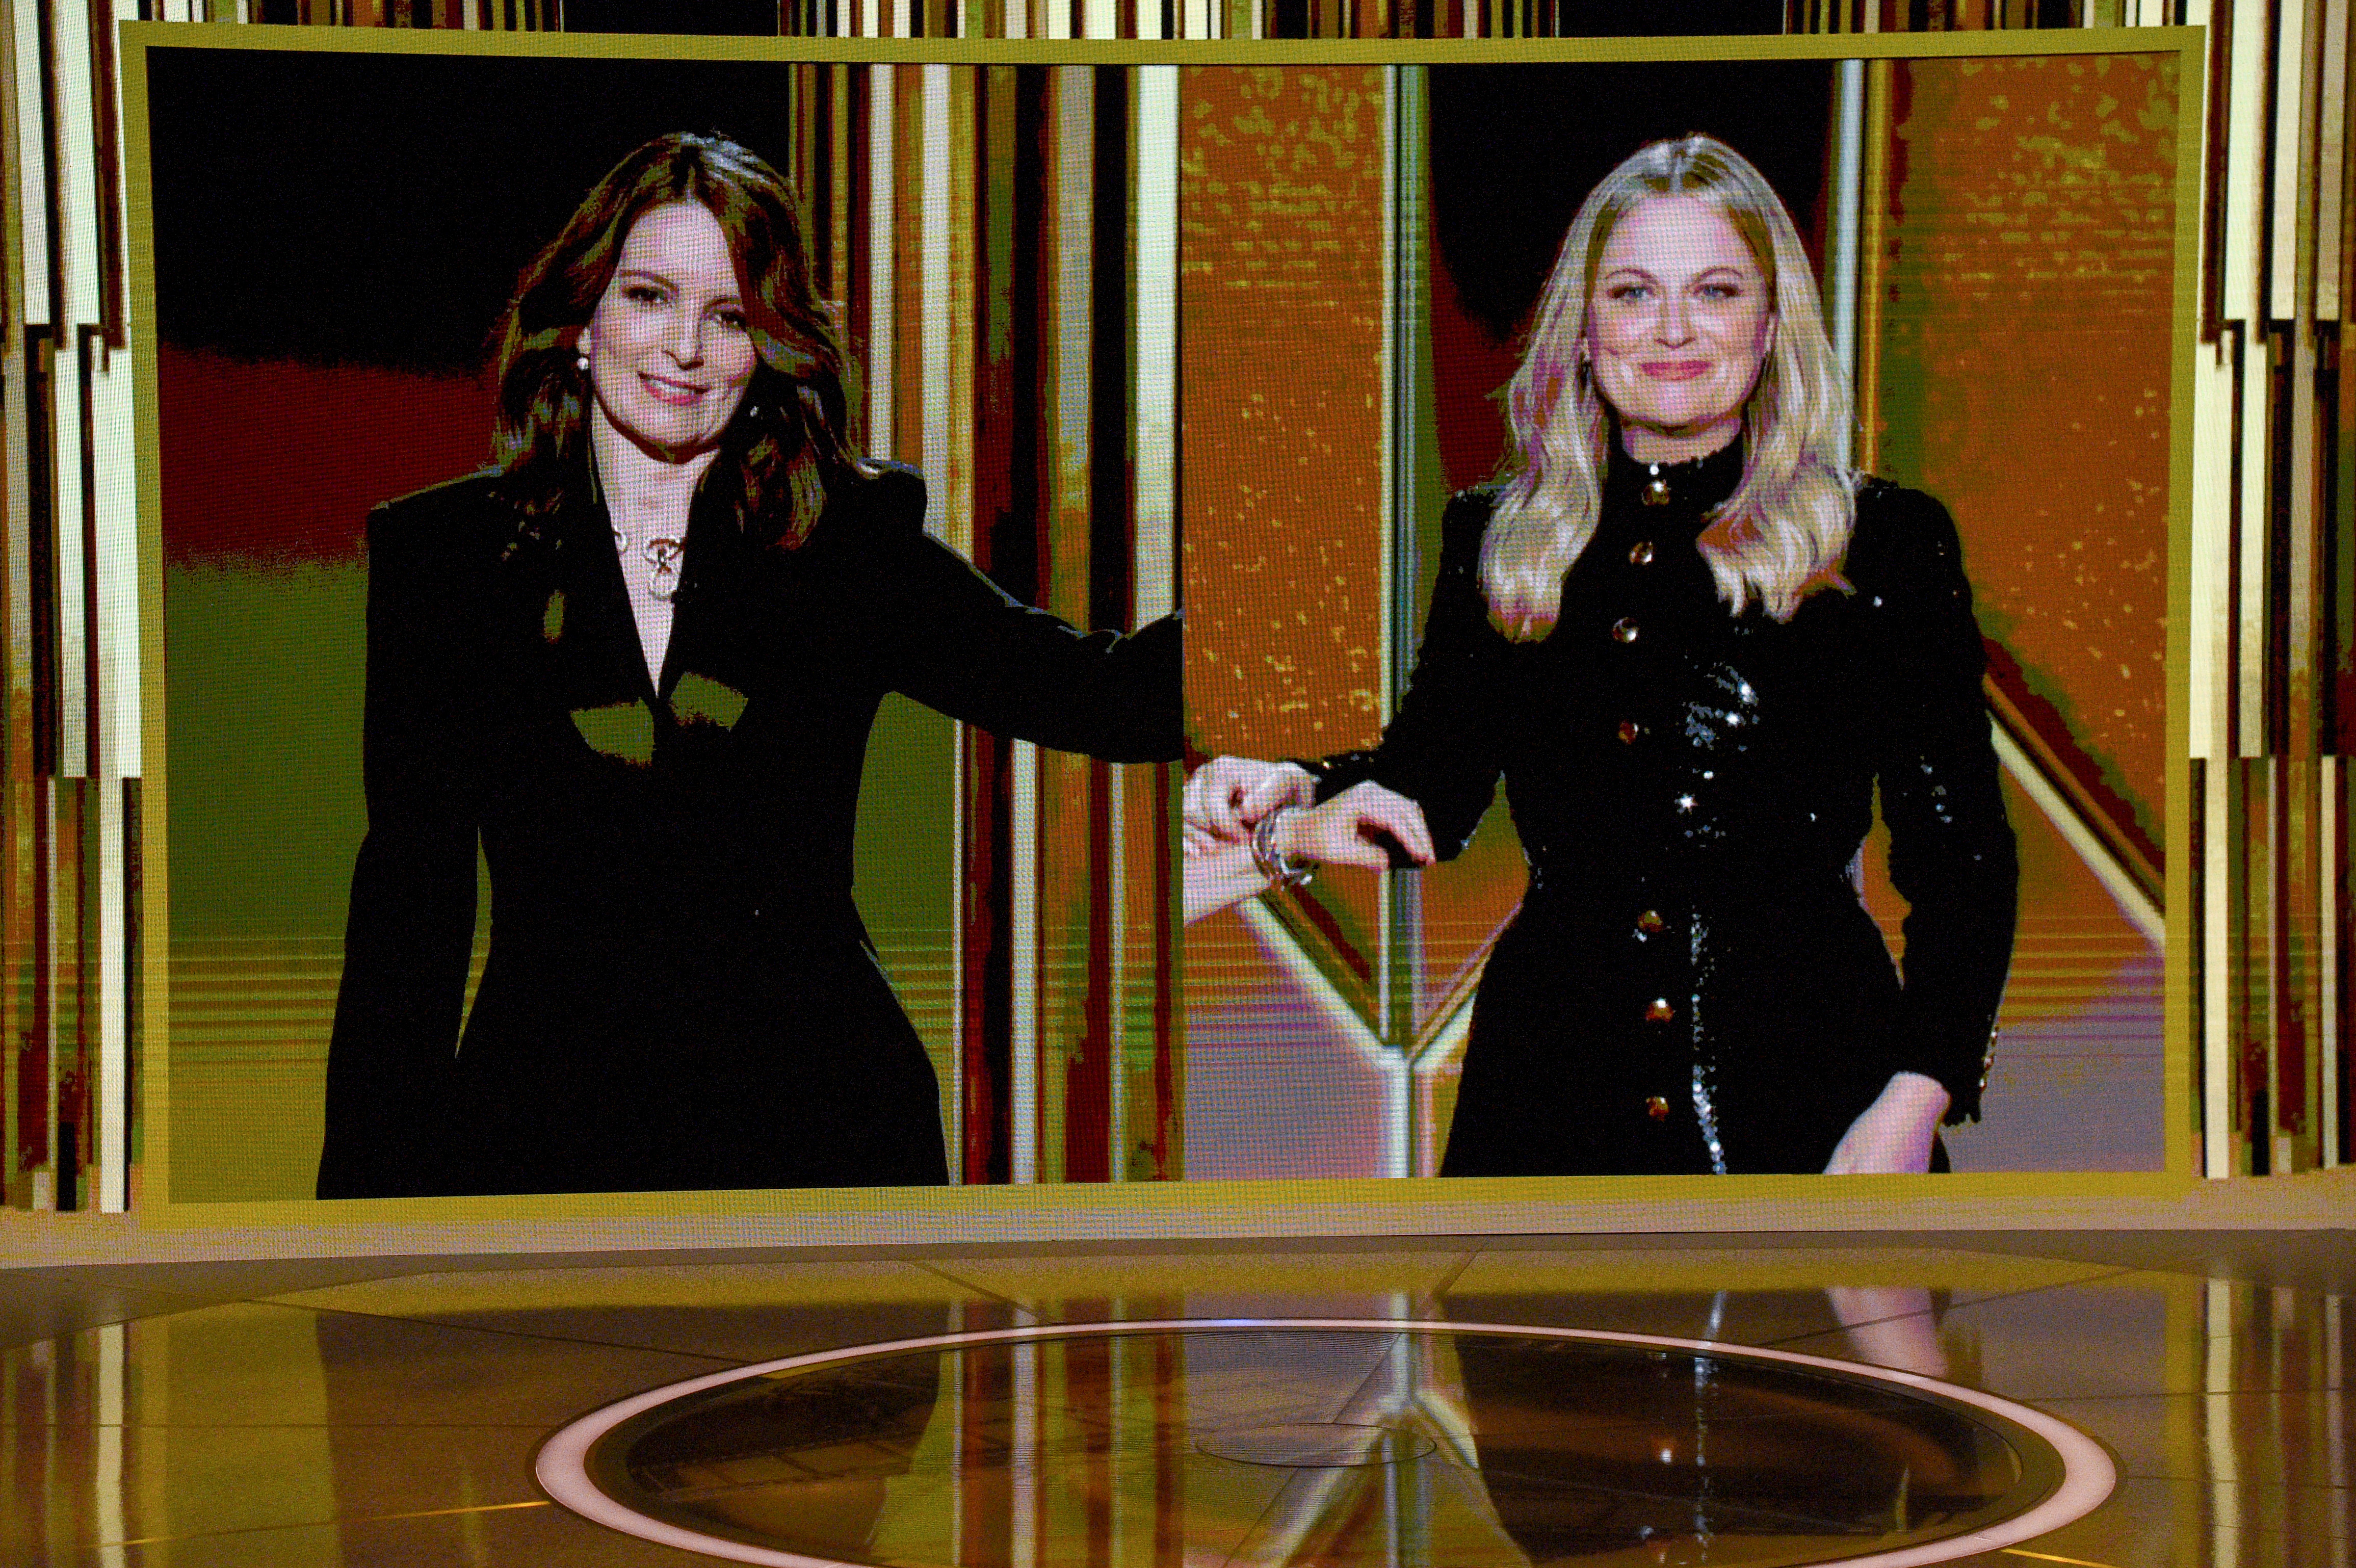 Tina Fey and Amy Poehler speak via livestream during the 78th Annual Golden Globe Awards on Feb. 28, 2021